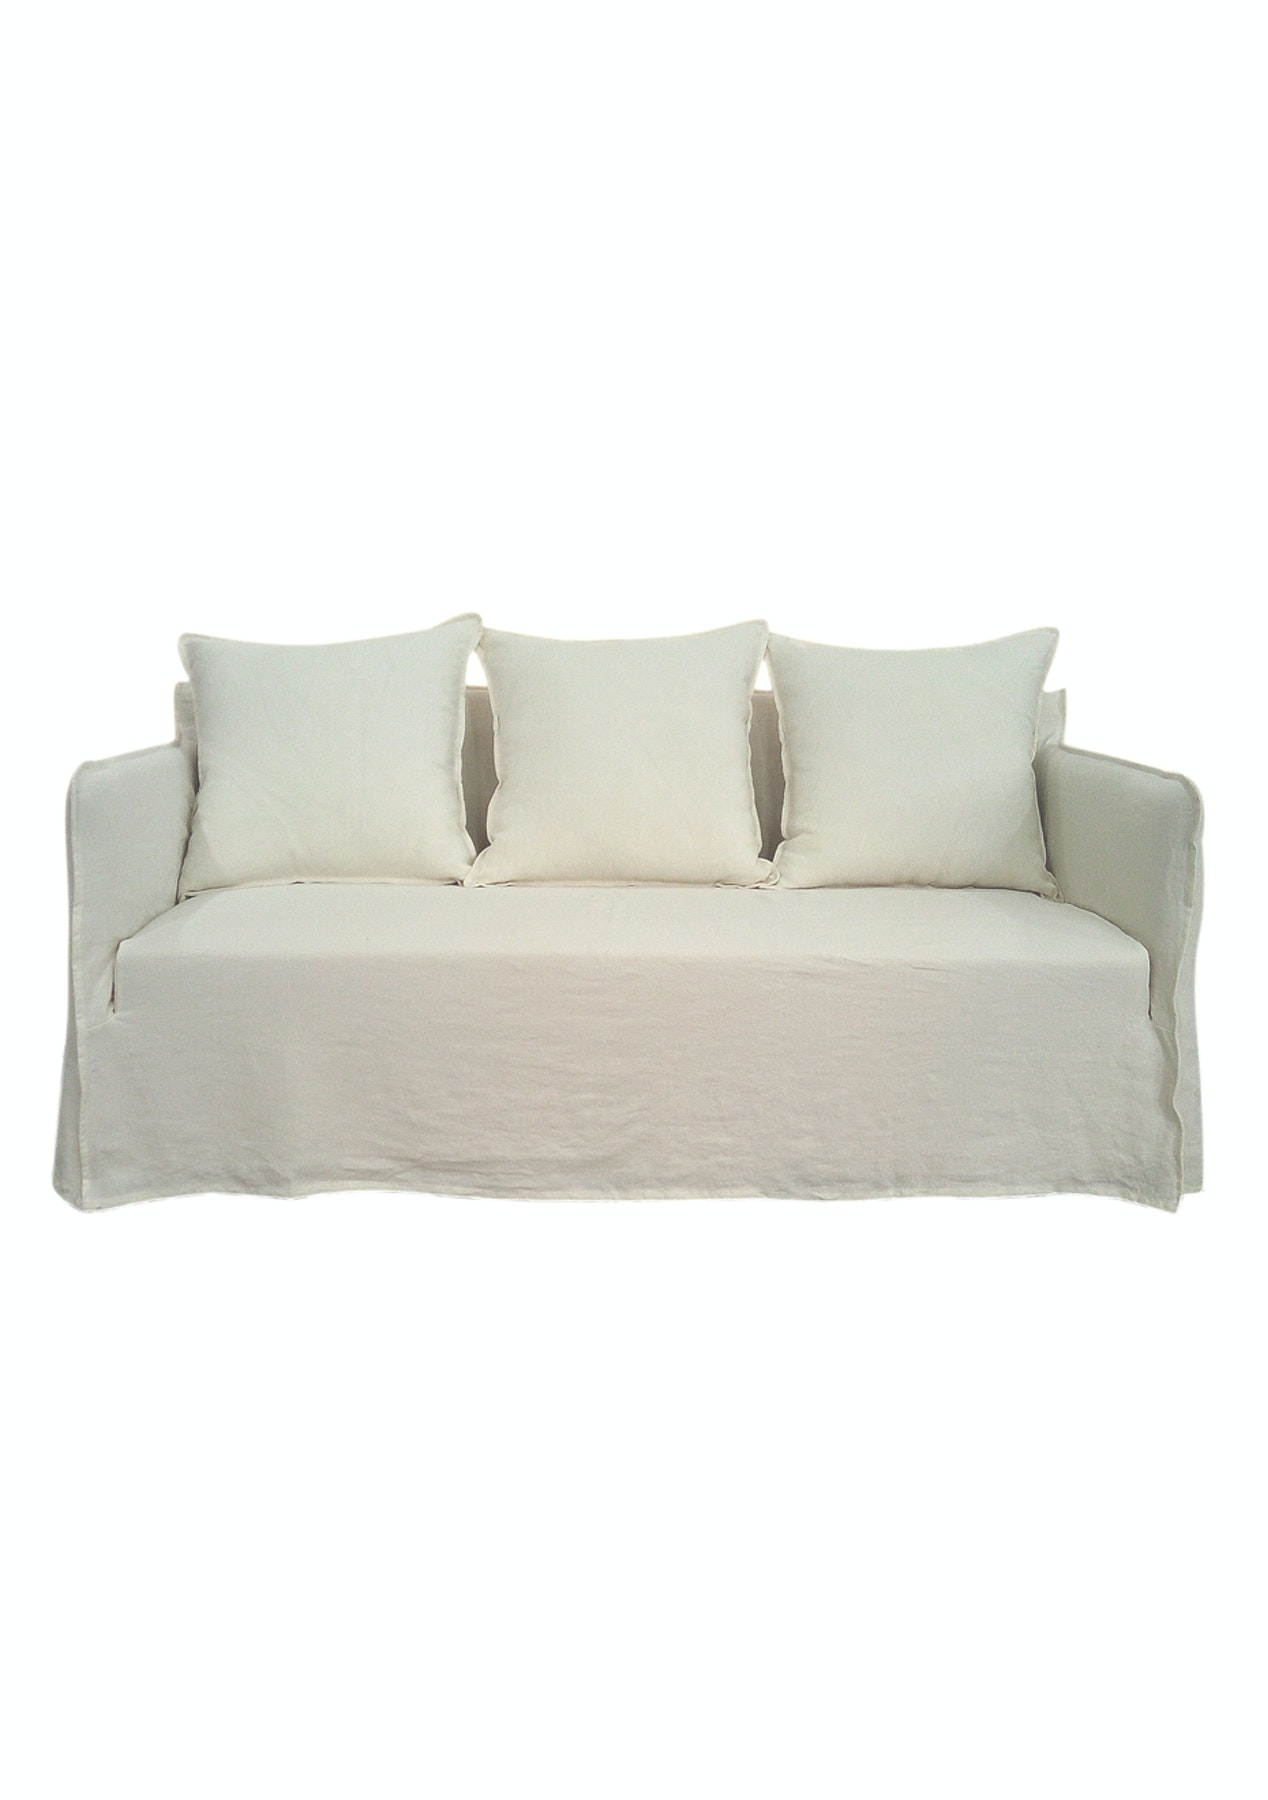 Marvelous 100 Luxe Linen Slip Cover 2 Seater Sofa Off White Gmtry Best Dining Table And Chair Ideas Images Gmtryco